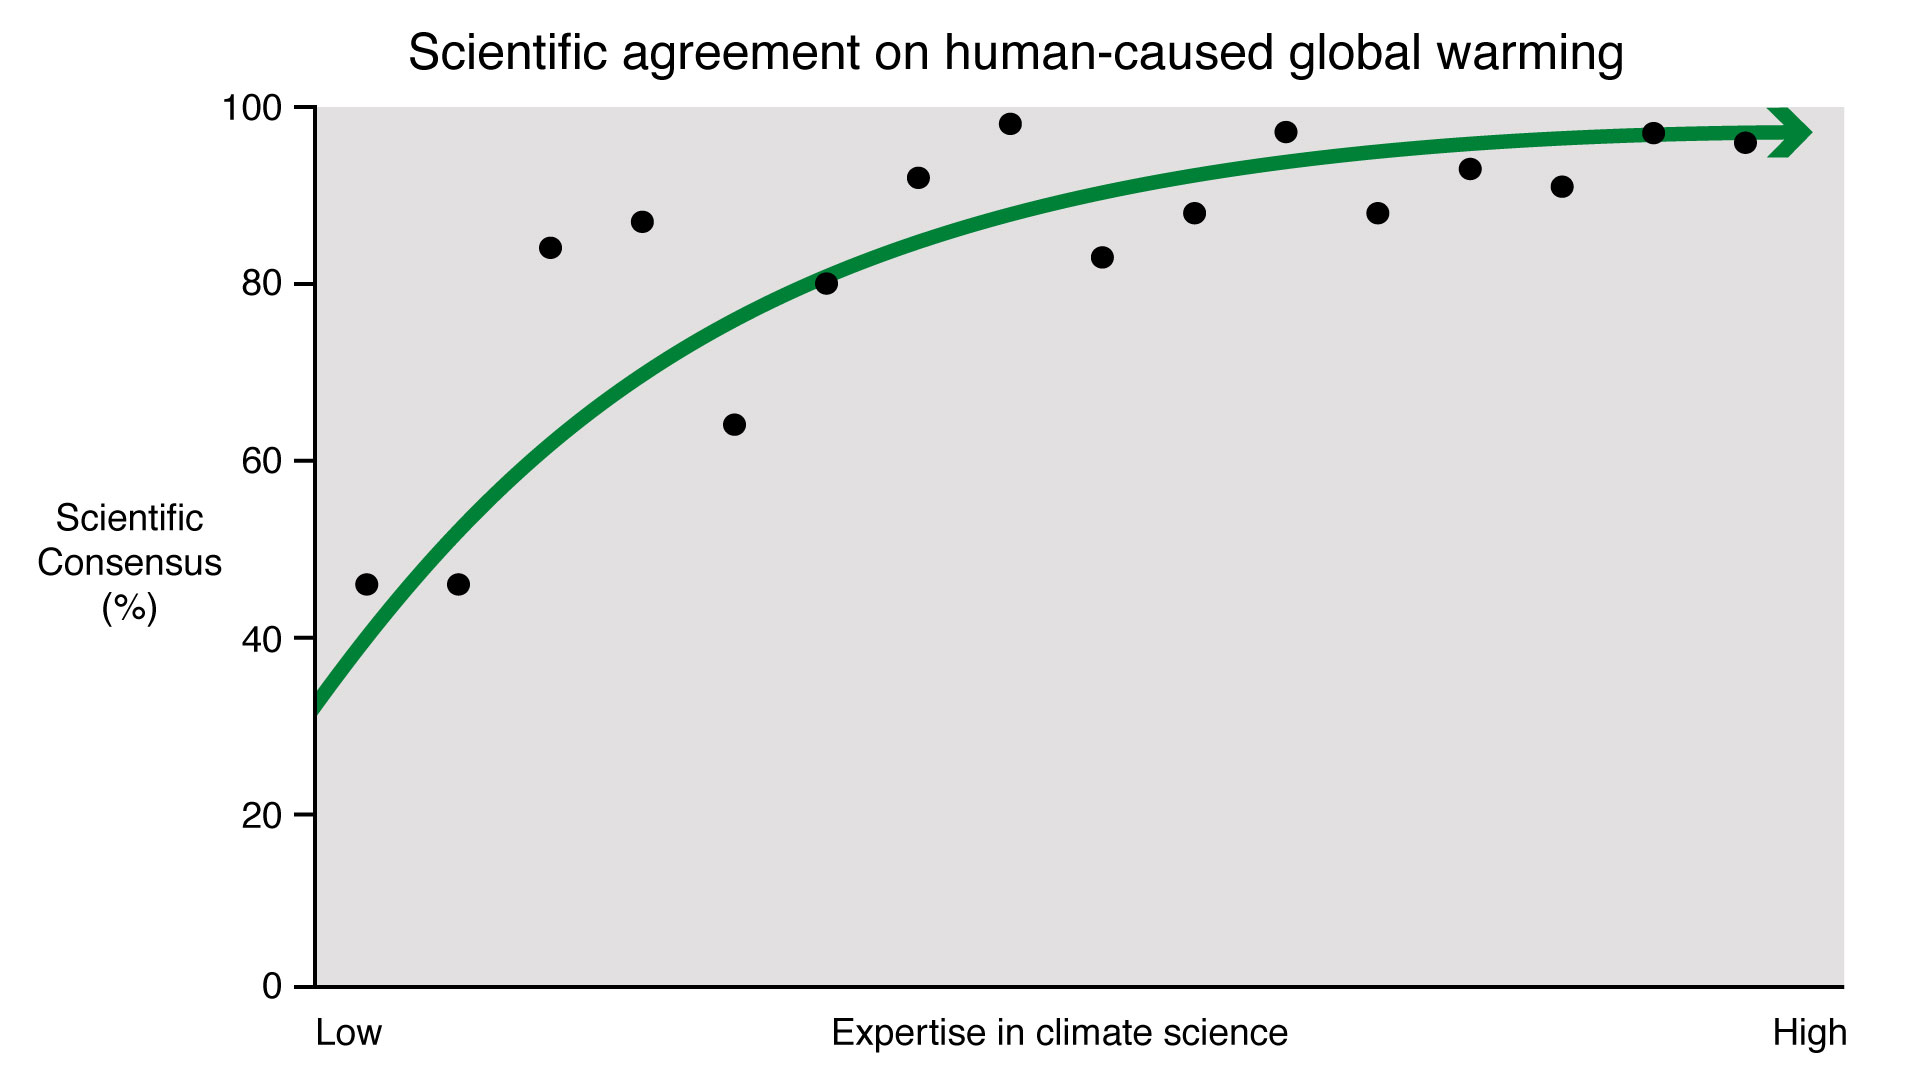 021 Expertise Vs Consensus Global Warming Research Paper Outstanding Conclusion Full